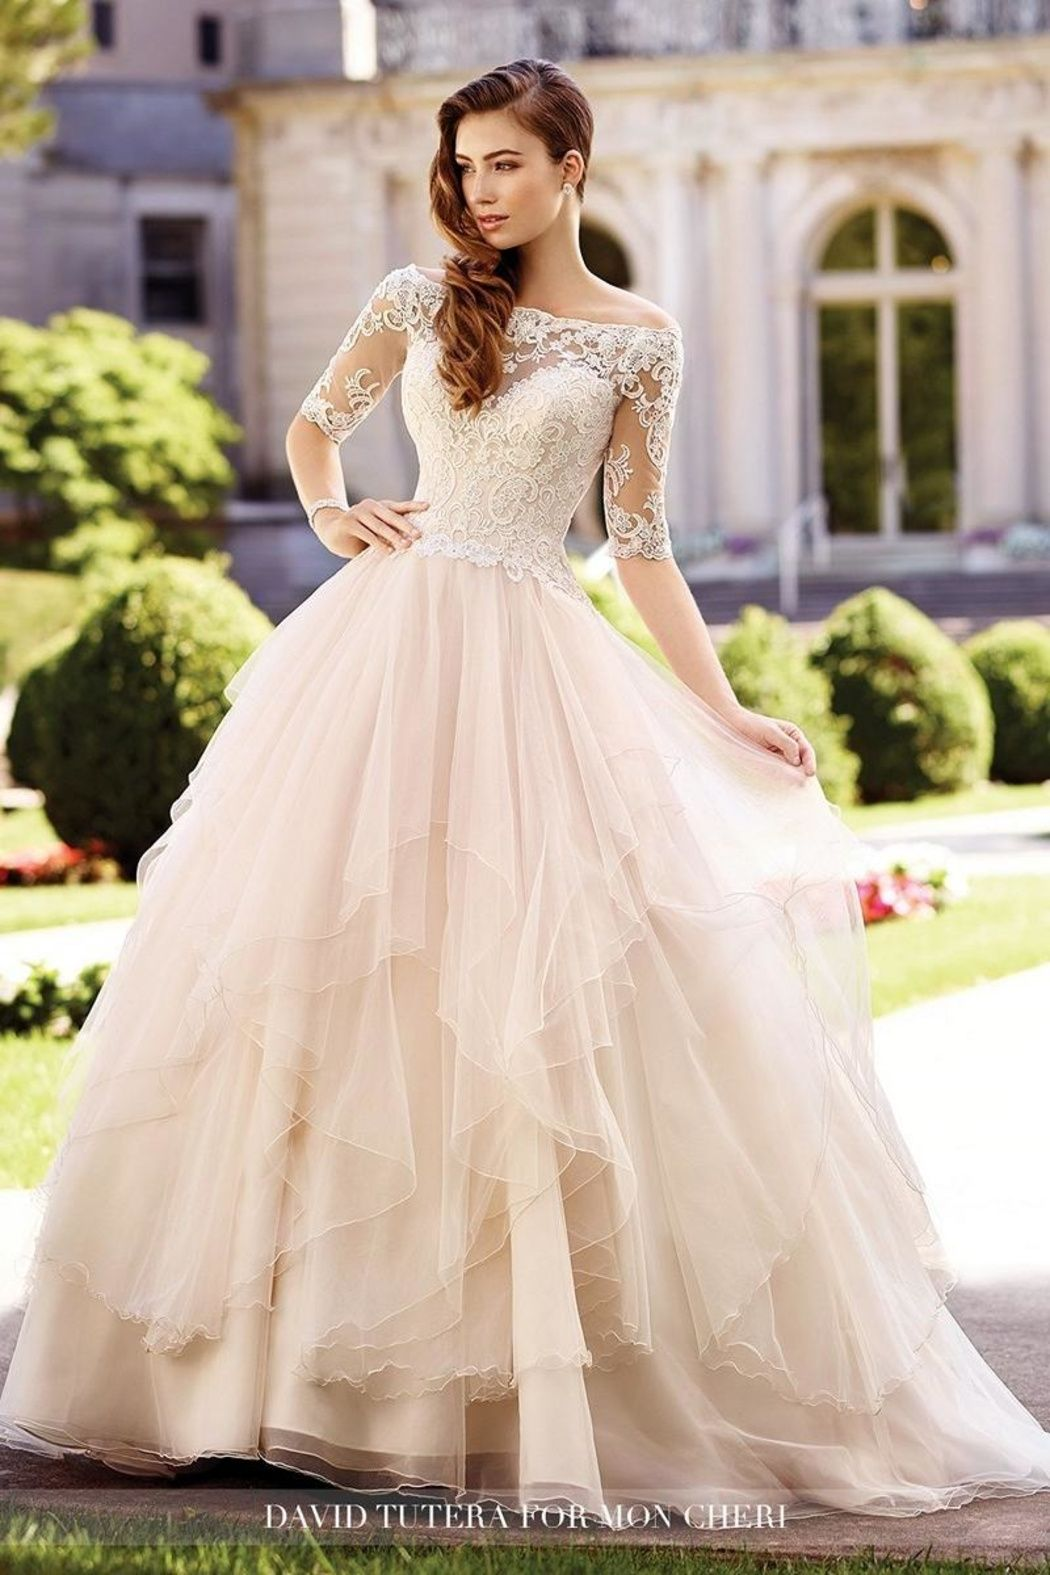 David tutera for mon cheri offtheshoulder ballgown main image